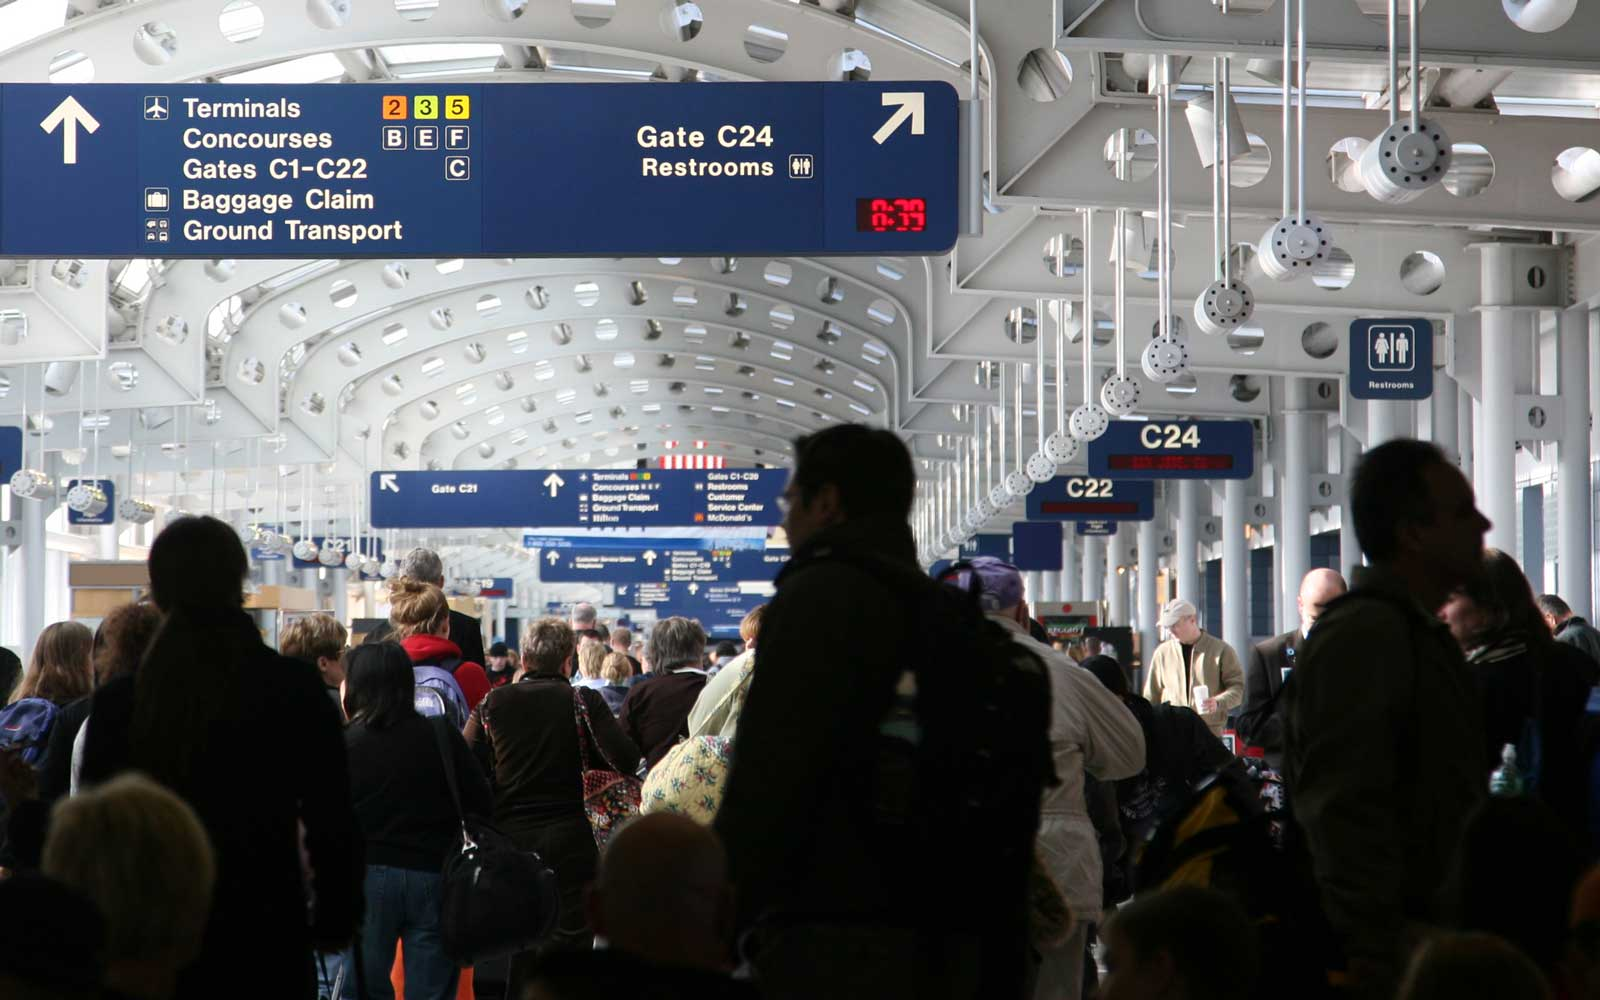 Busy Airport during holiday travel and airlines most likely to bump you from flights